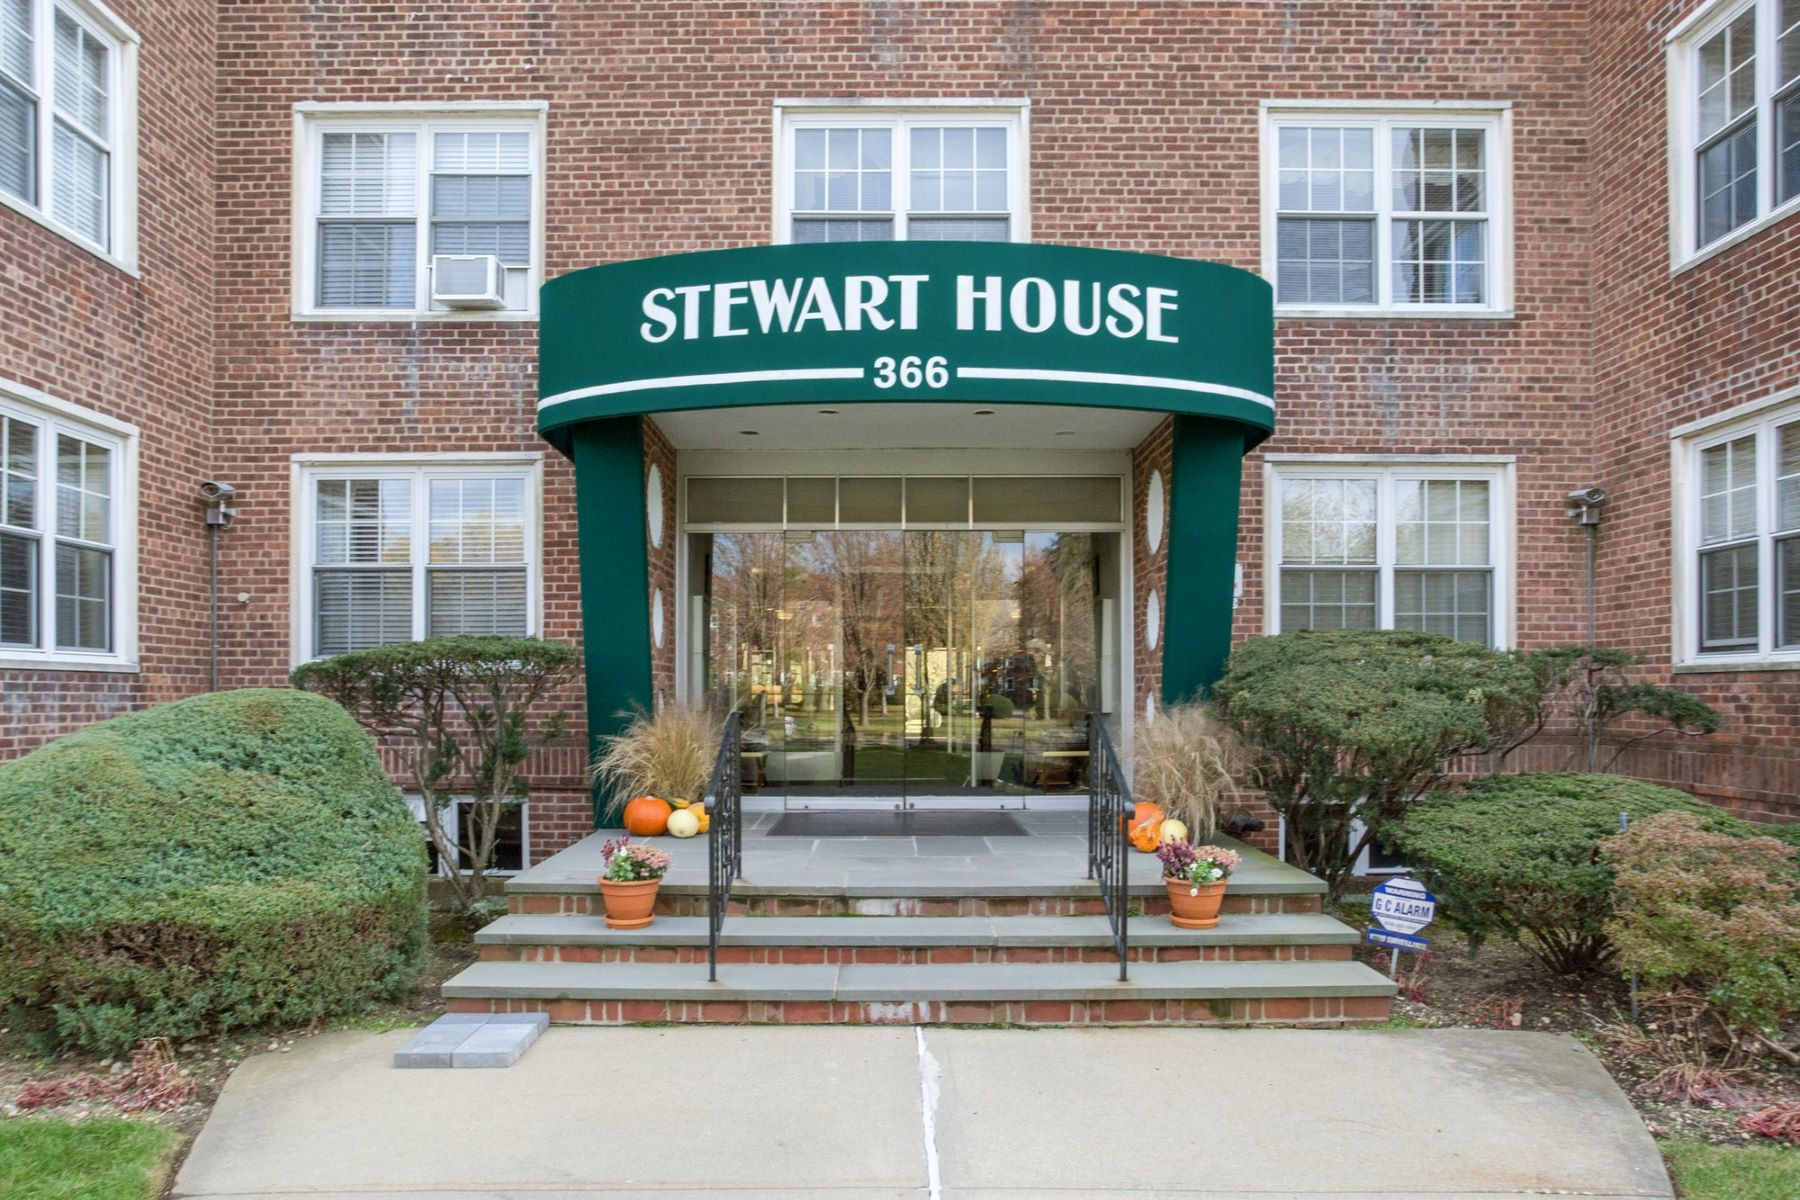 Co-op for Sale at 366 Stewart Ave , C10, Garden City, NY 11530 366 Stewart Ave C10, Garden City, New York, 11530 United States